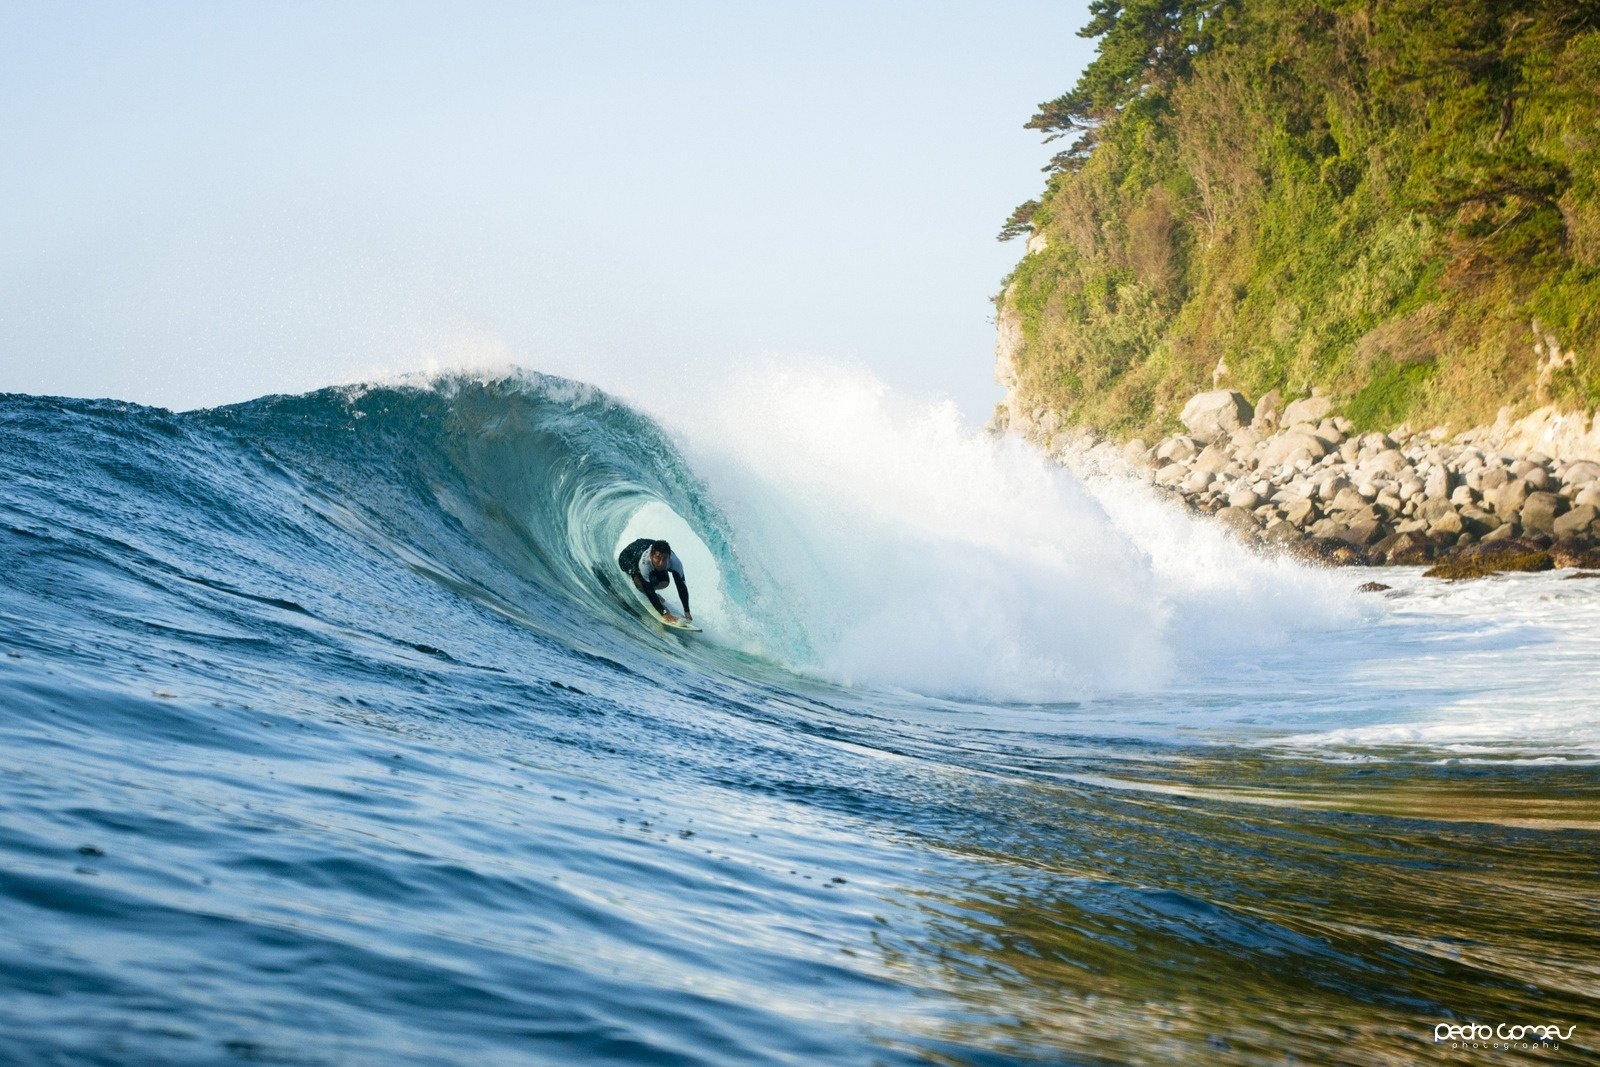 Pedro Gomes's photo of Shonan